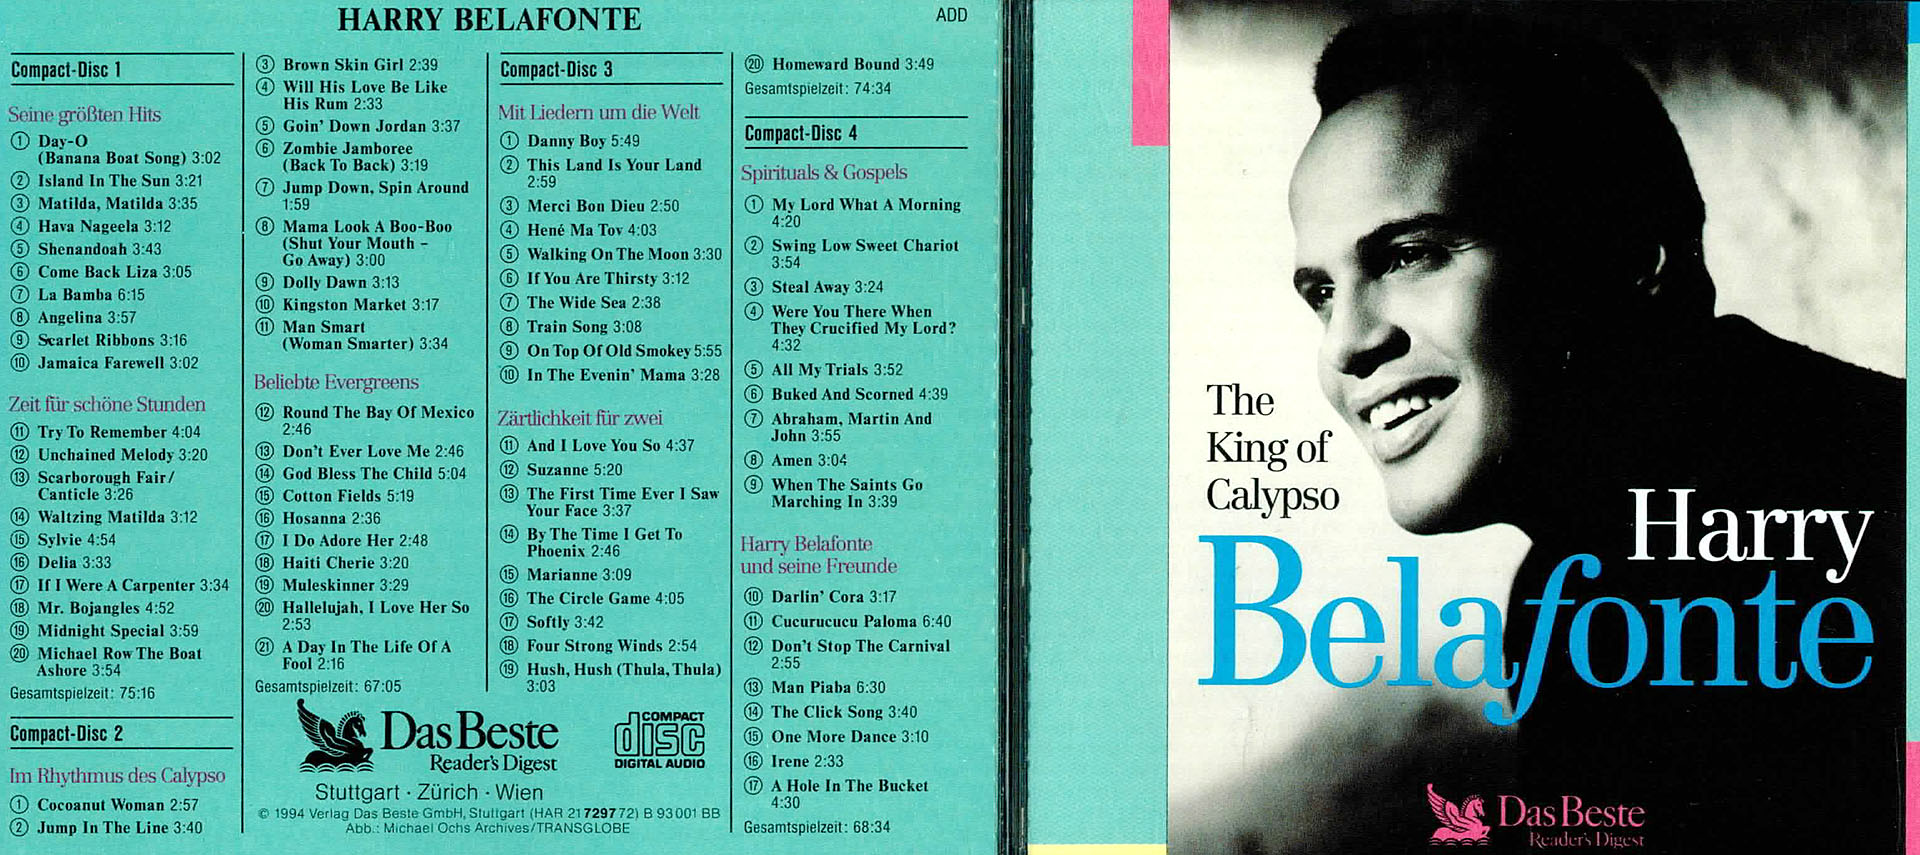 The King of Calypso - Harry Belafonte - Harry Belafonte